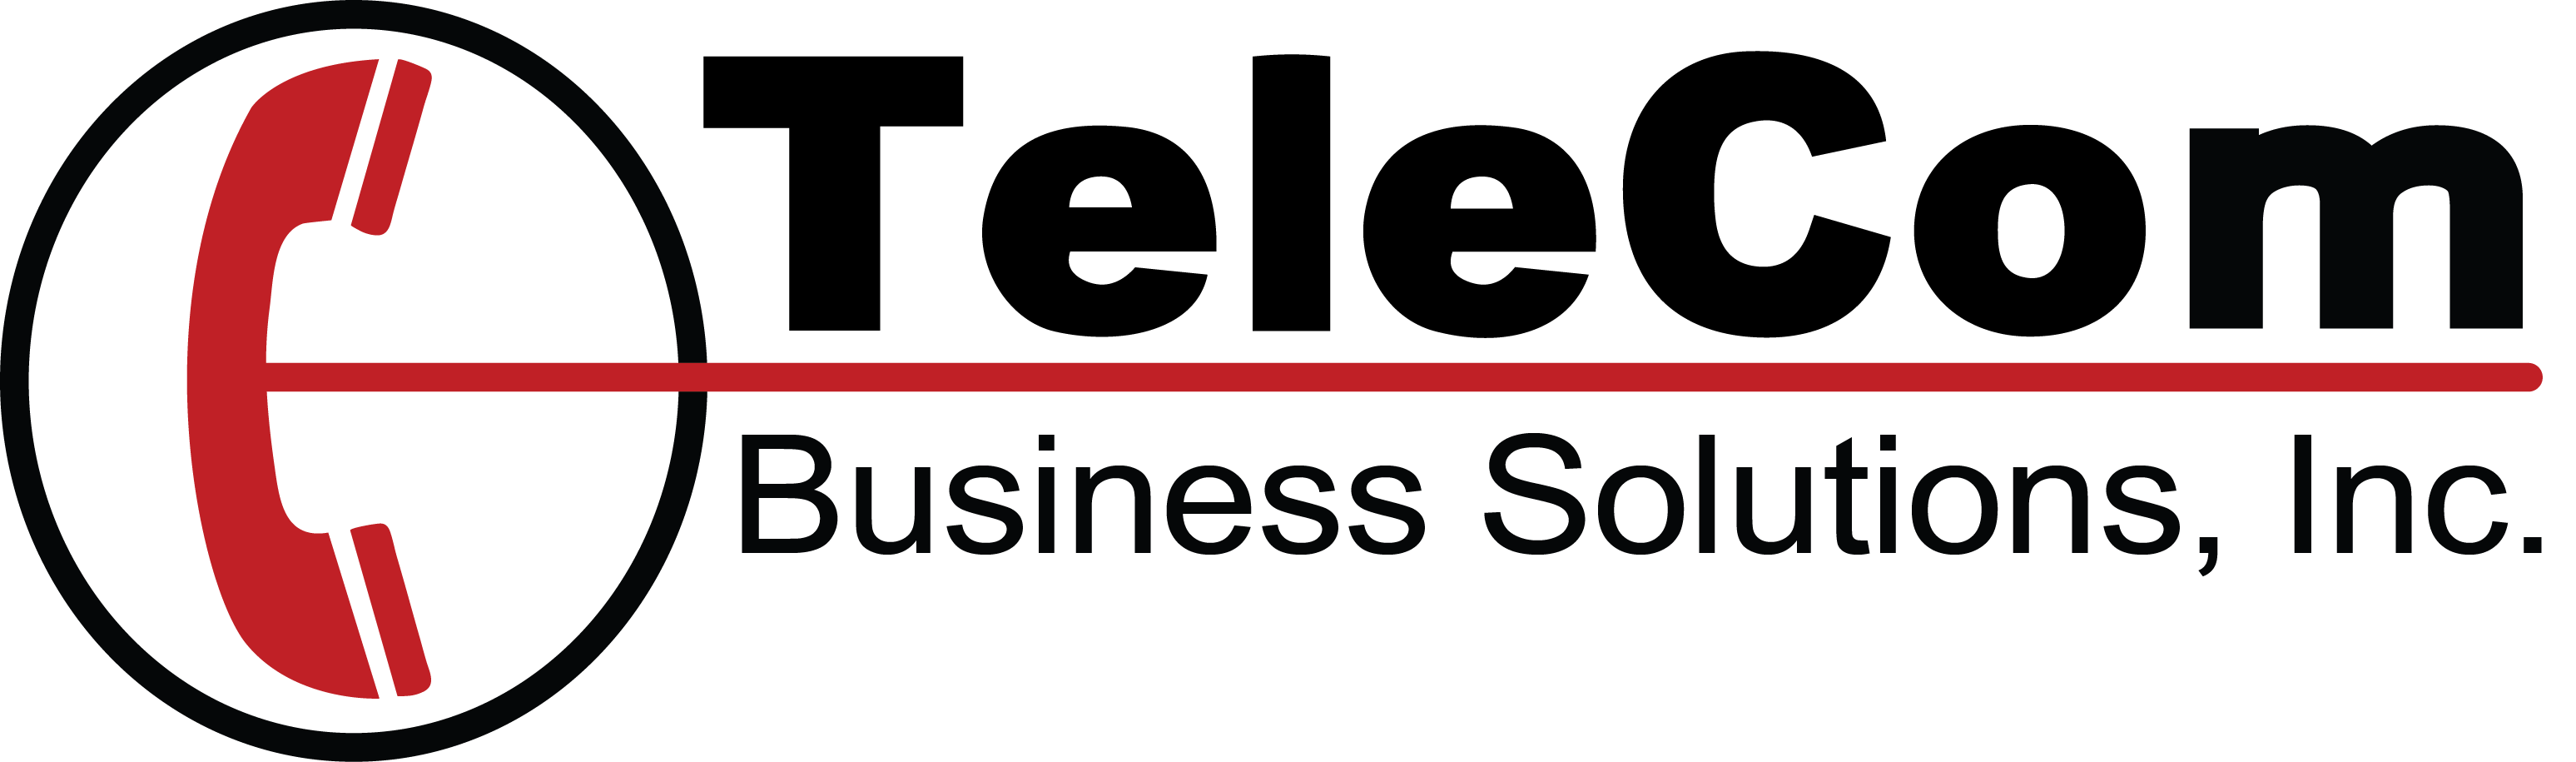 Eagle Sponsor - Telecom Business Solutions - Logo